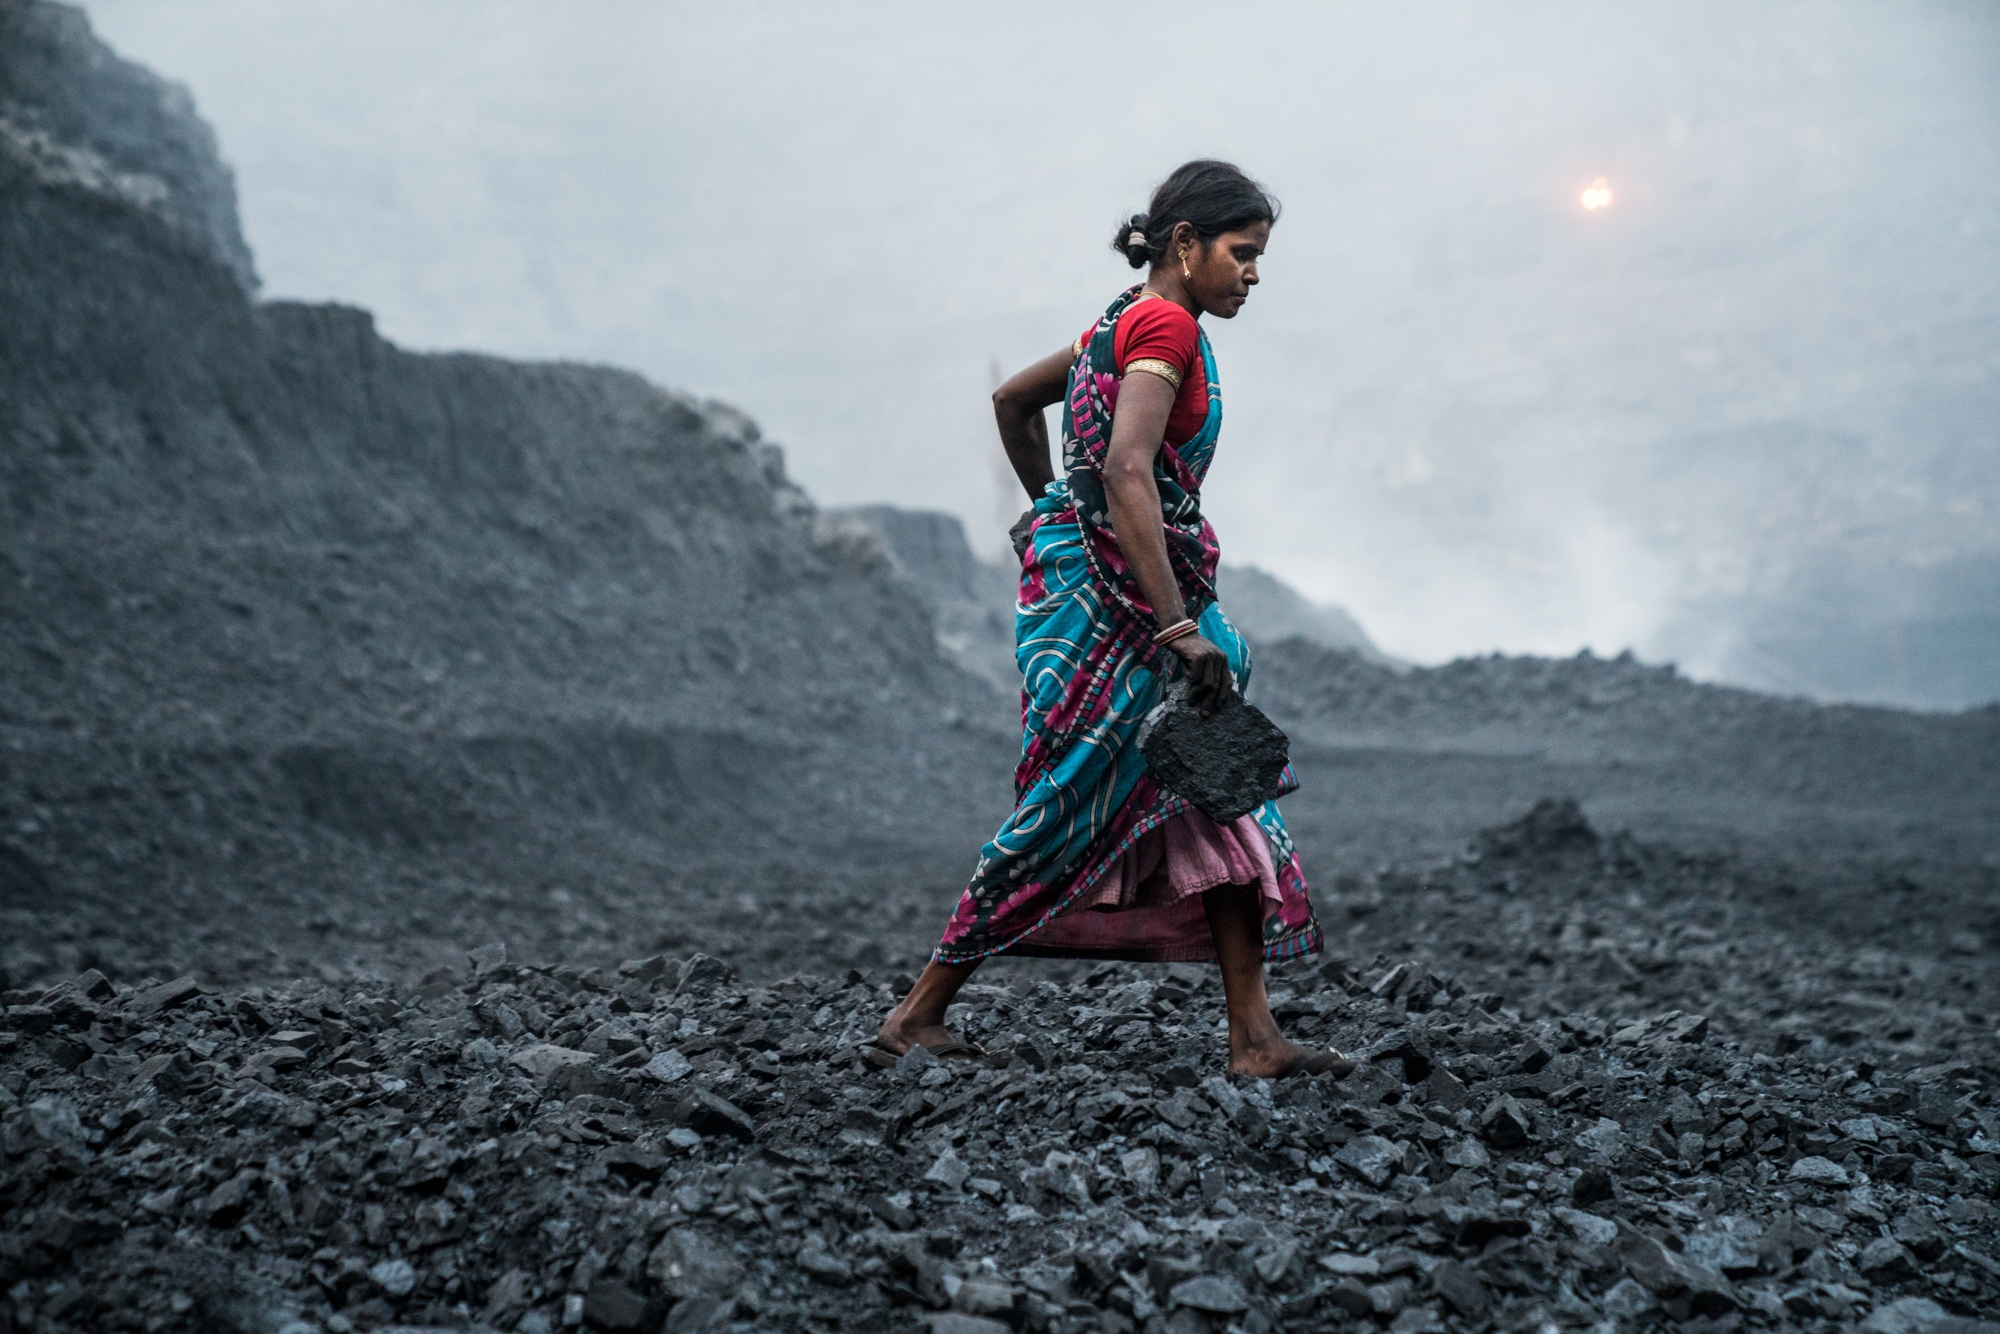 A female coal miner scavenges for coal deep inside a mine in one of India's largest coal mining regions in the state of Jharkhand.